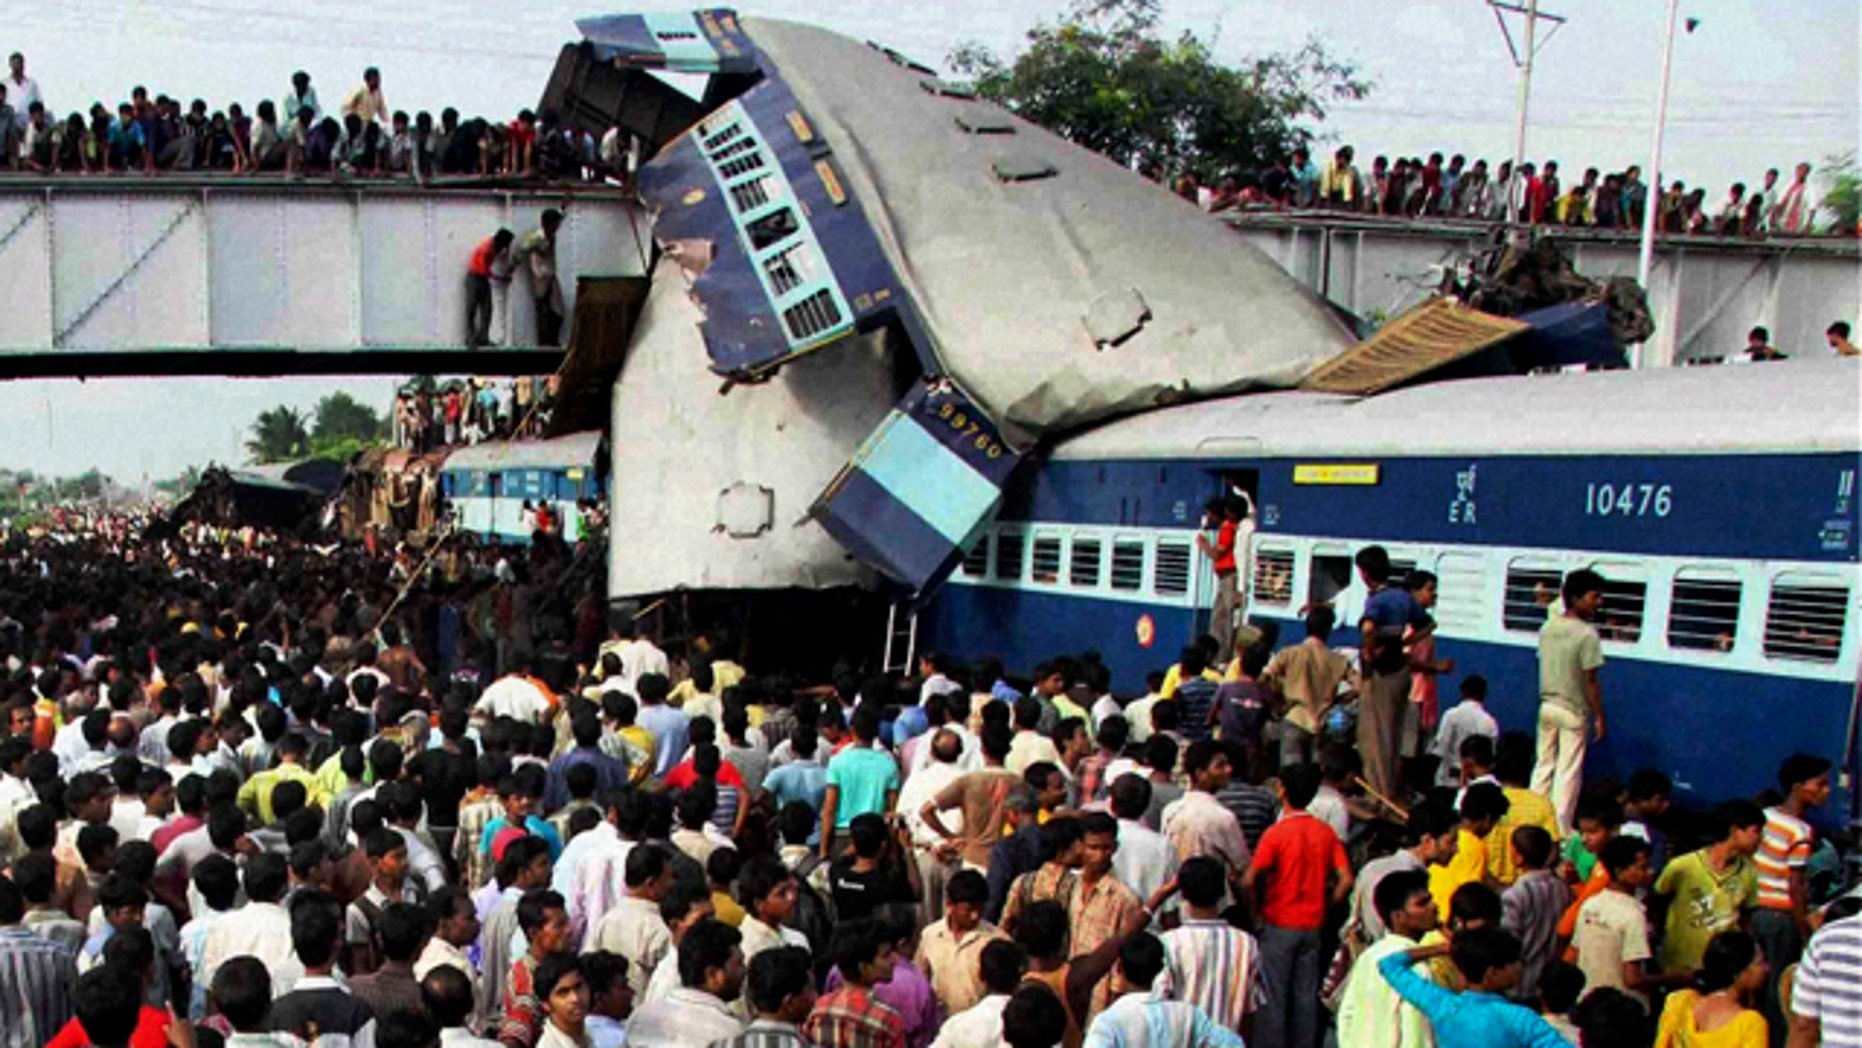 July 19: A speeding express train collided with a passenger train at the Sainthia station in eastern India early Monday, mangling the carriages and killing scores of people, railway police said. (AP)